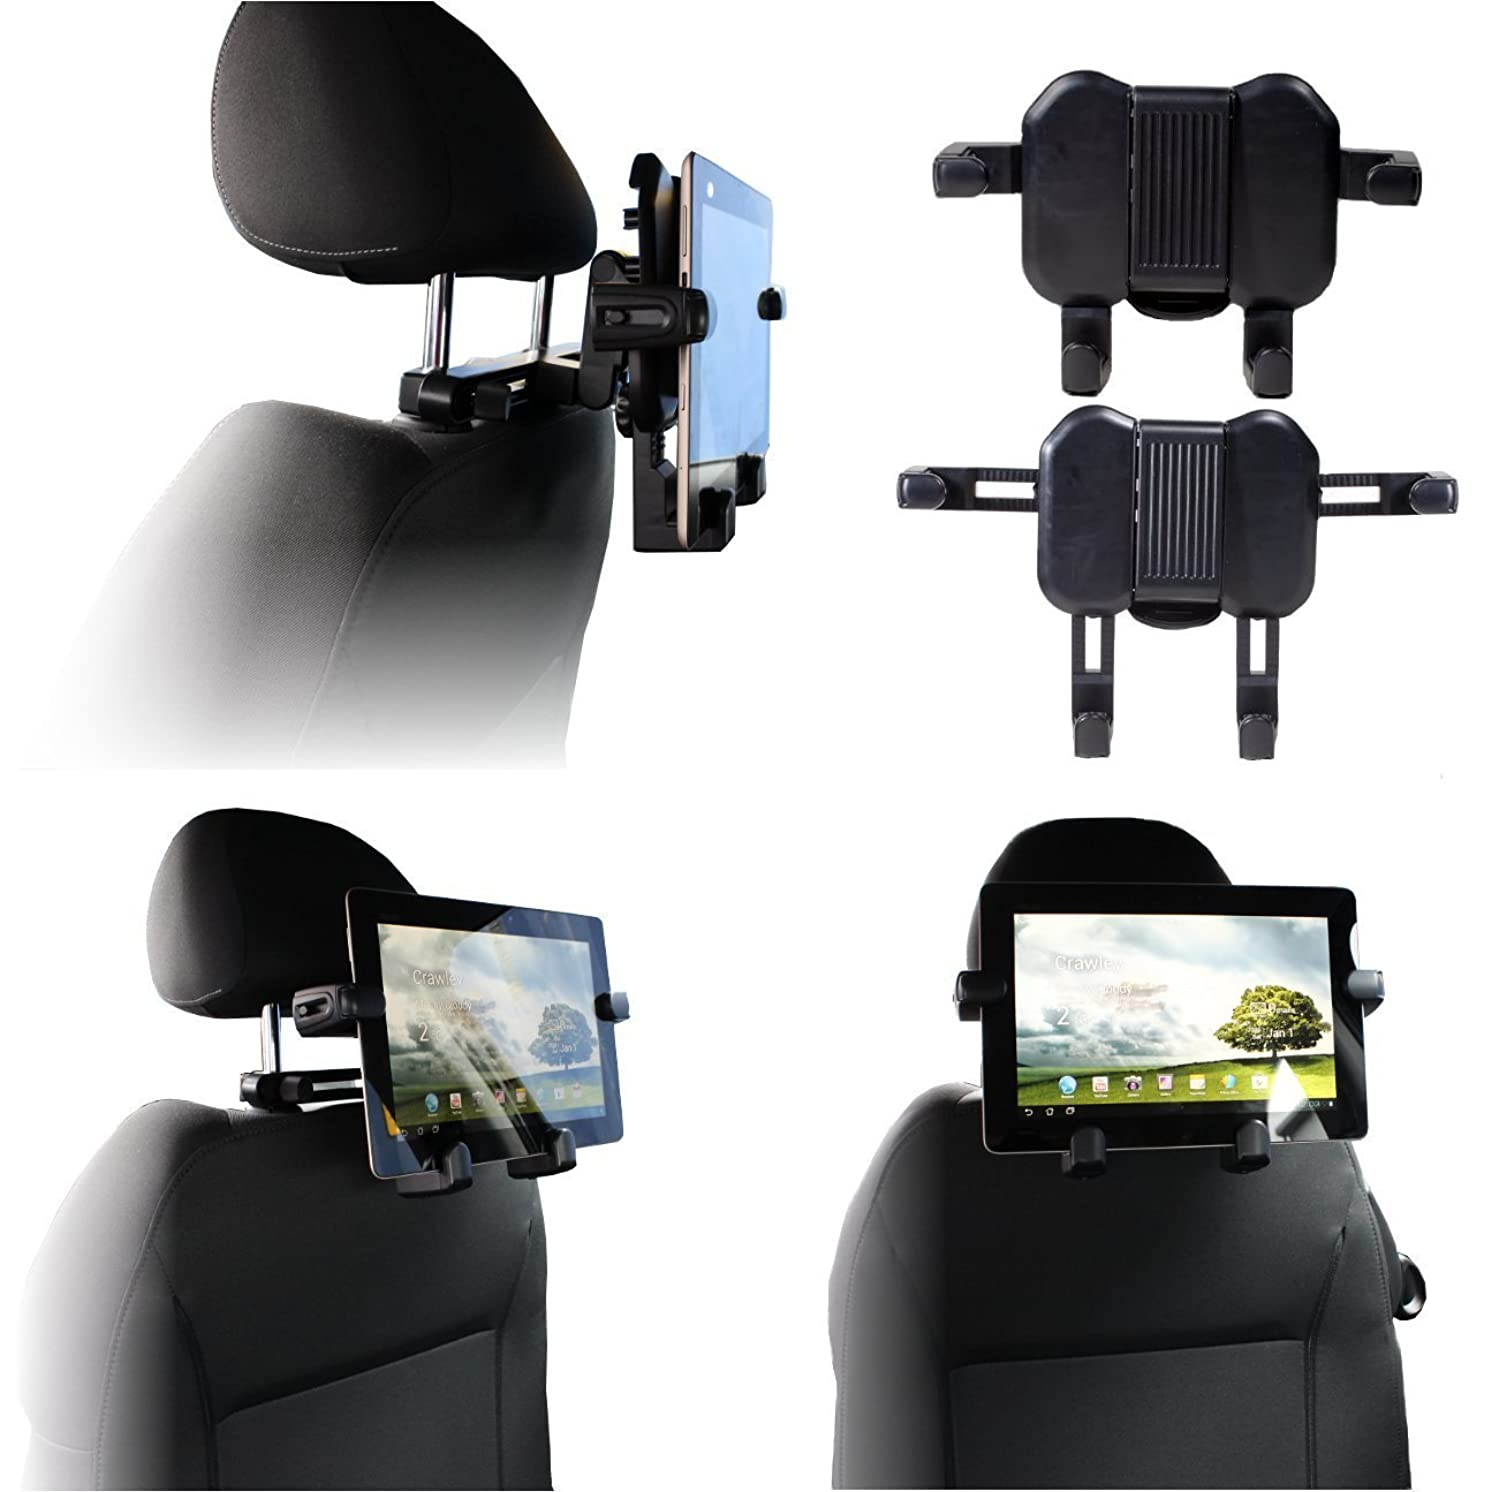 Navitech In Car Portable 2 in 1 Laptop / Tablet Head Rest / Headrest Mount / Holder For The Acer Switch 3